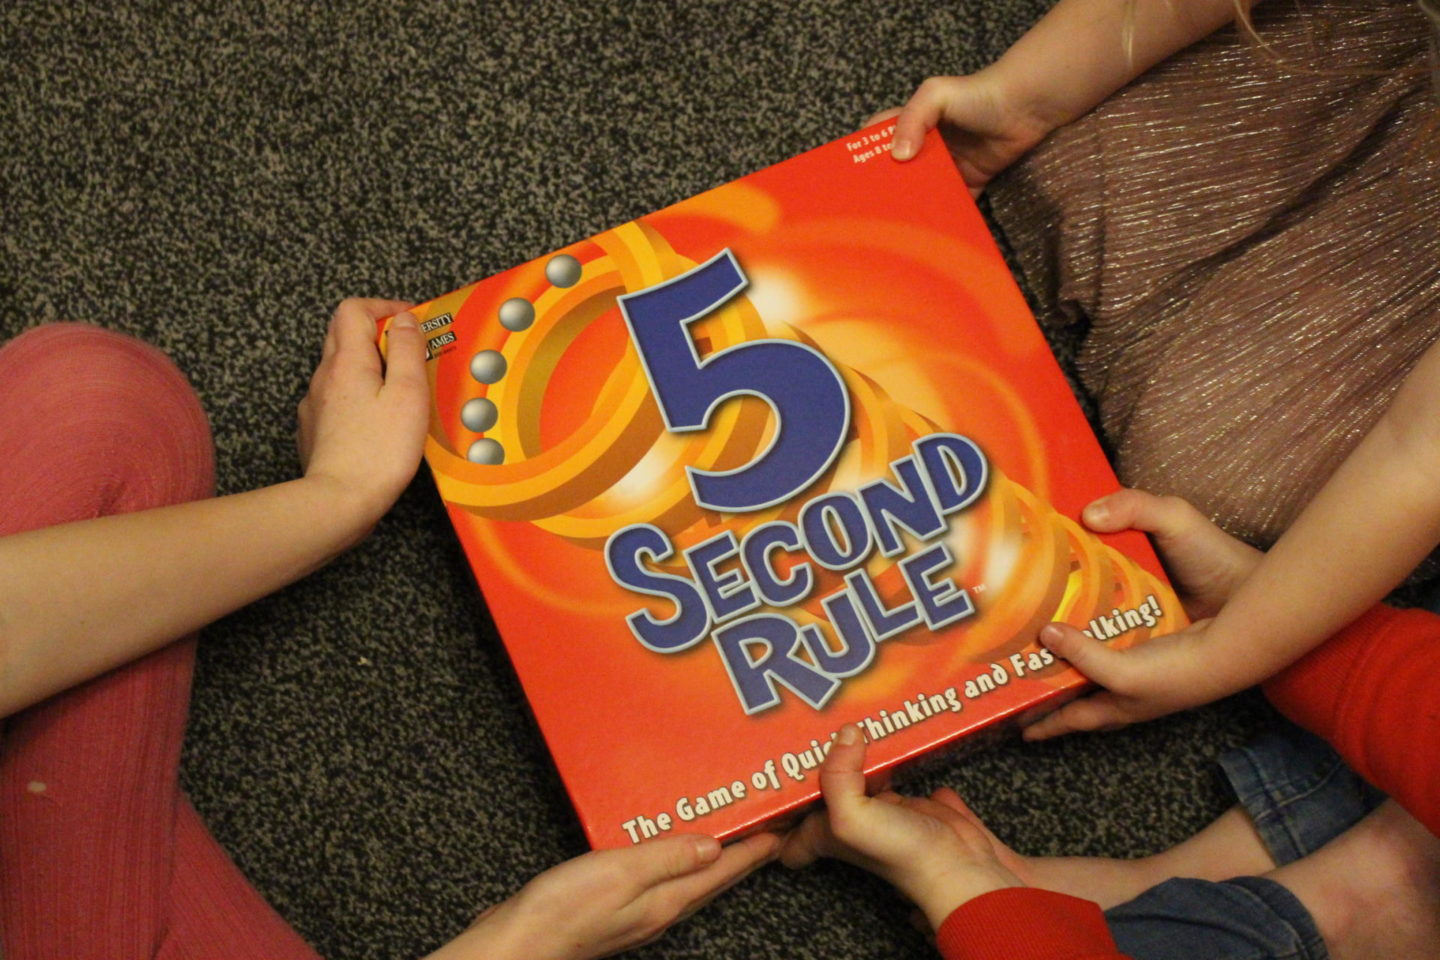 Family Game Night With 5 Second Rule |Competition|